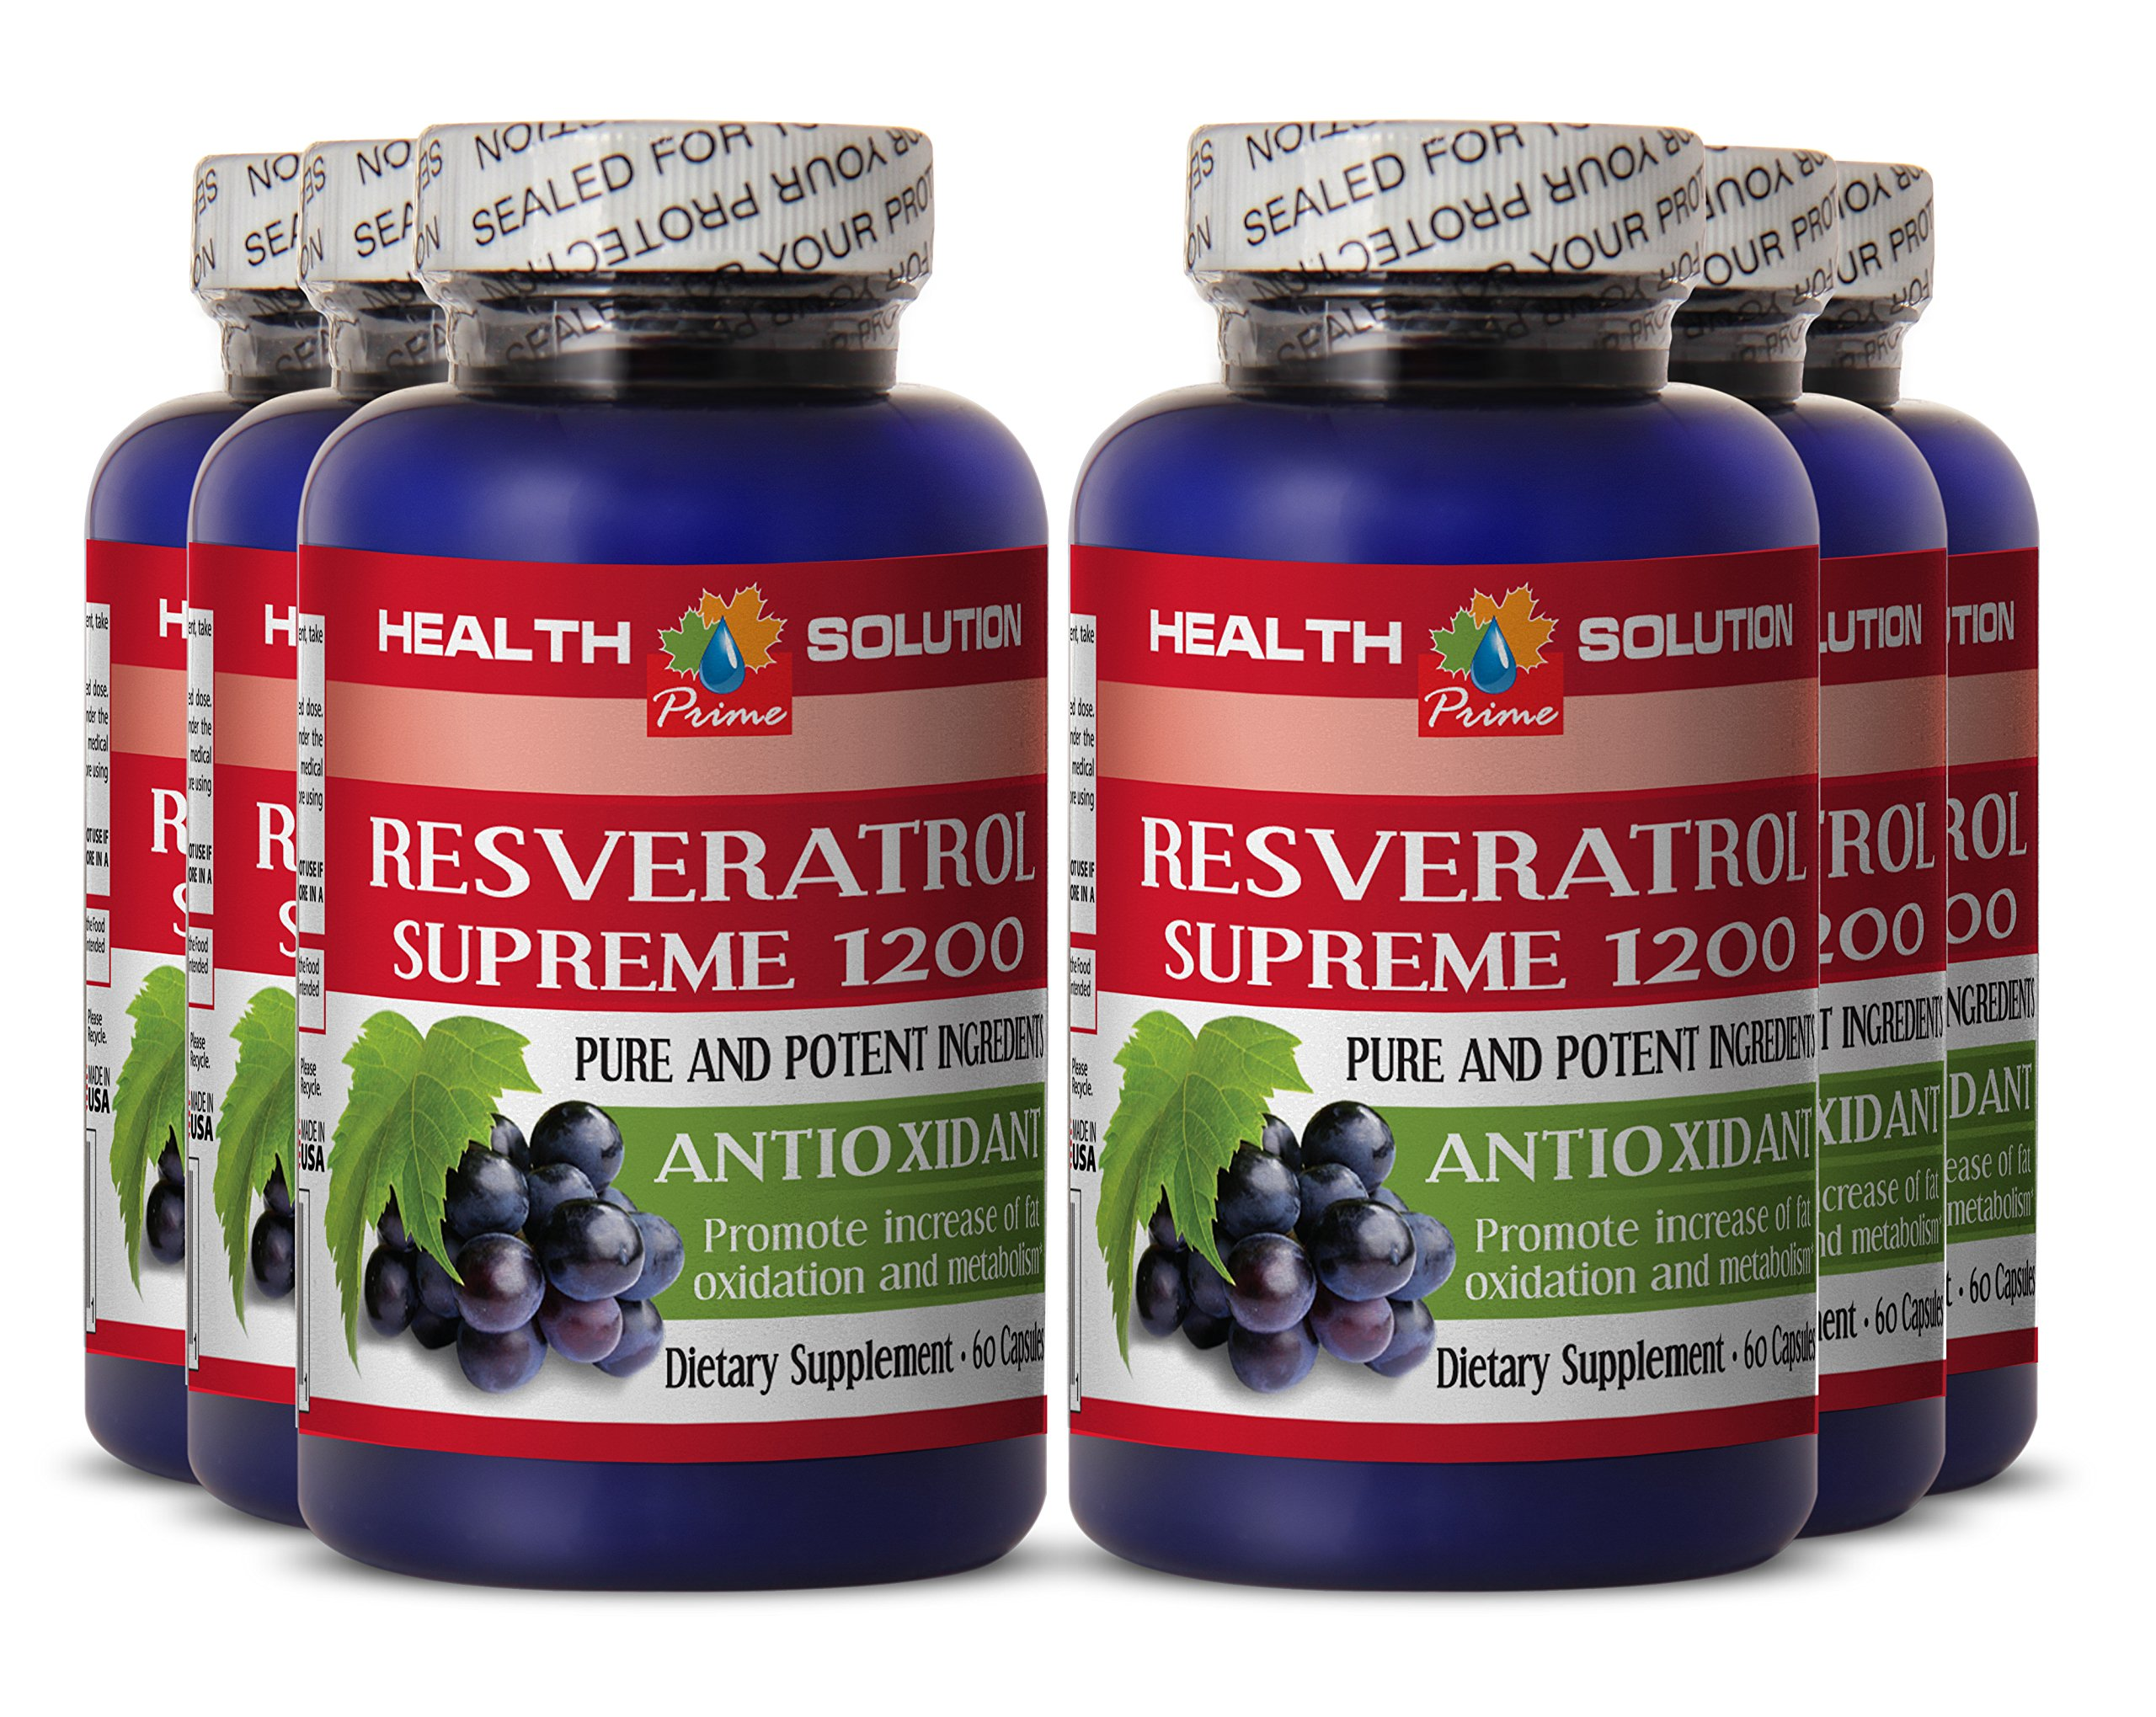 Red wine extract with resveratrol - RESVERATROL SUPREME 1200MG - support digestion (6 Bottles) by Health Solution Prime